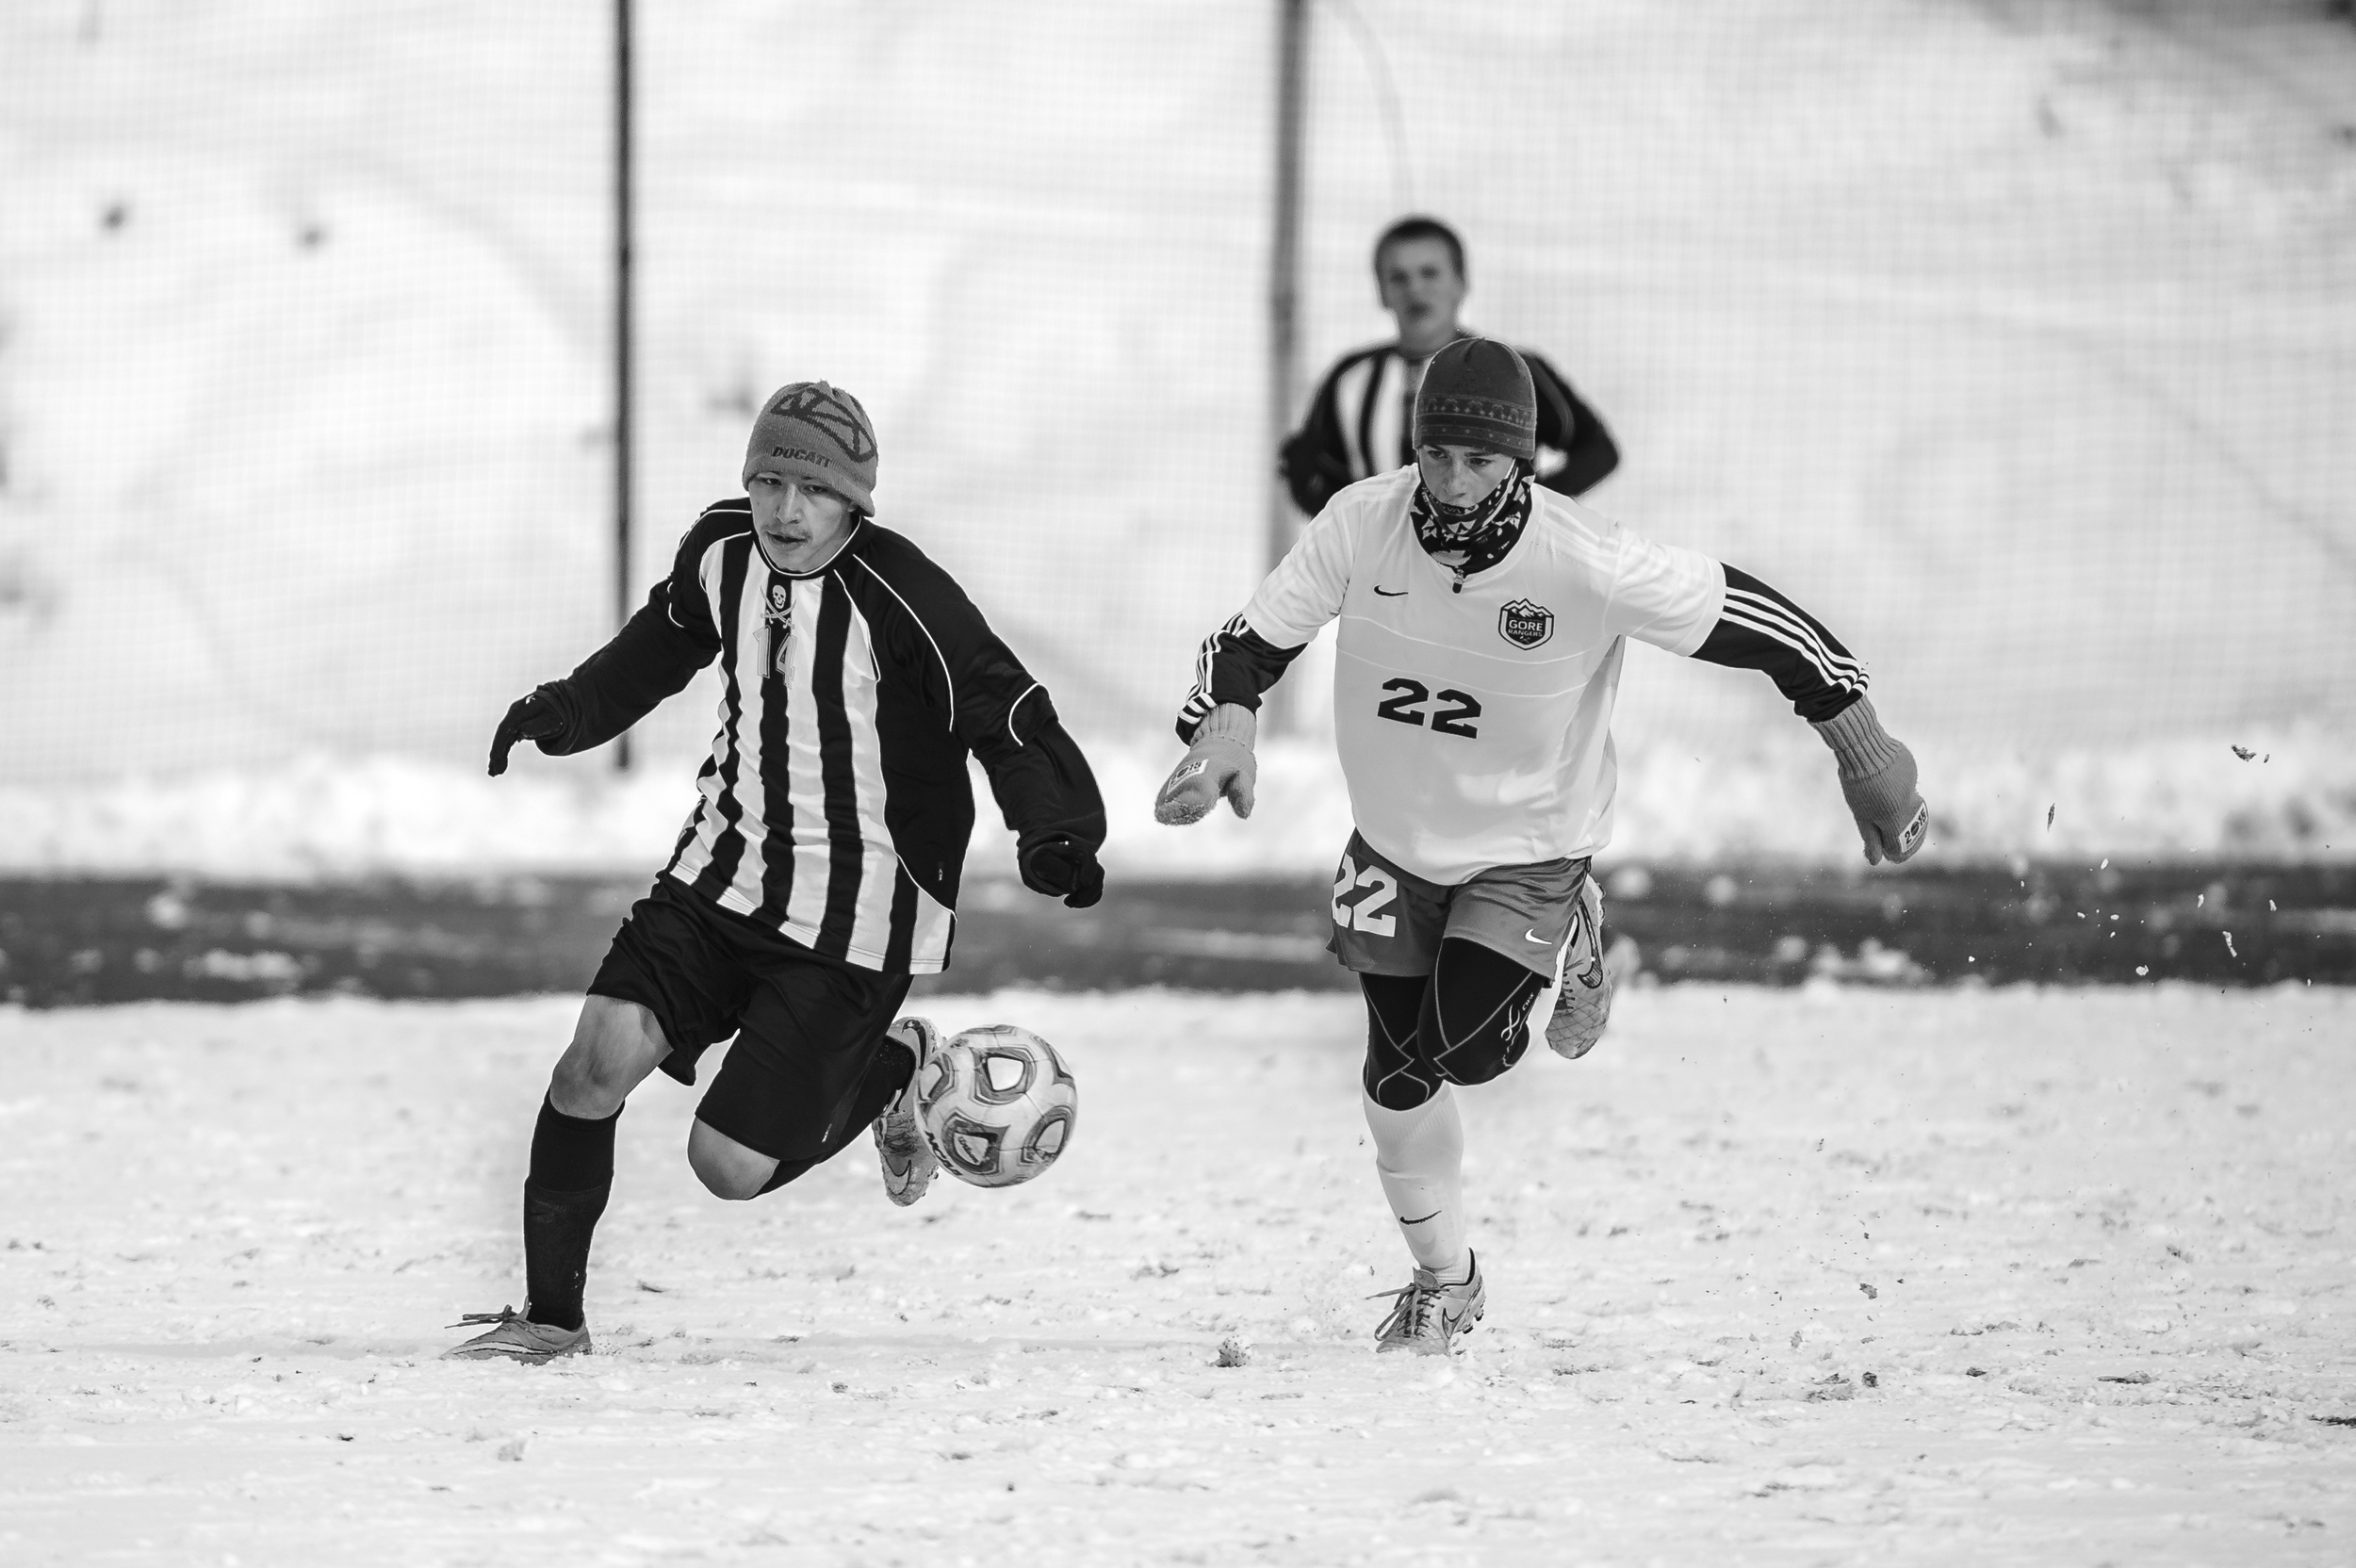 Players battle each other and the elements during a playoff soccer game